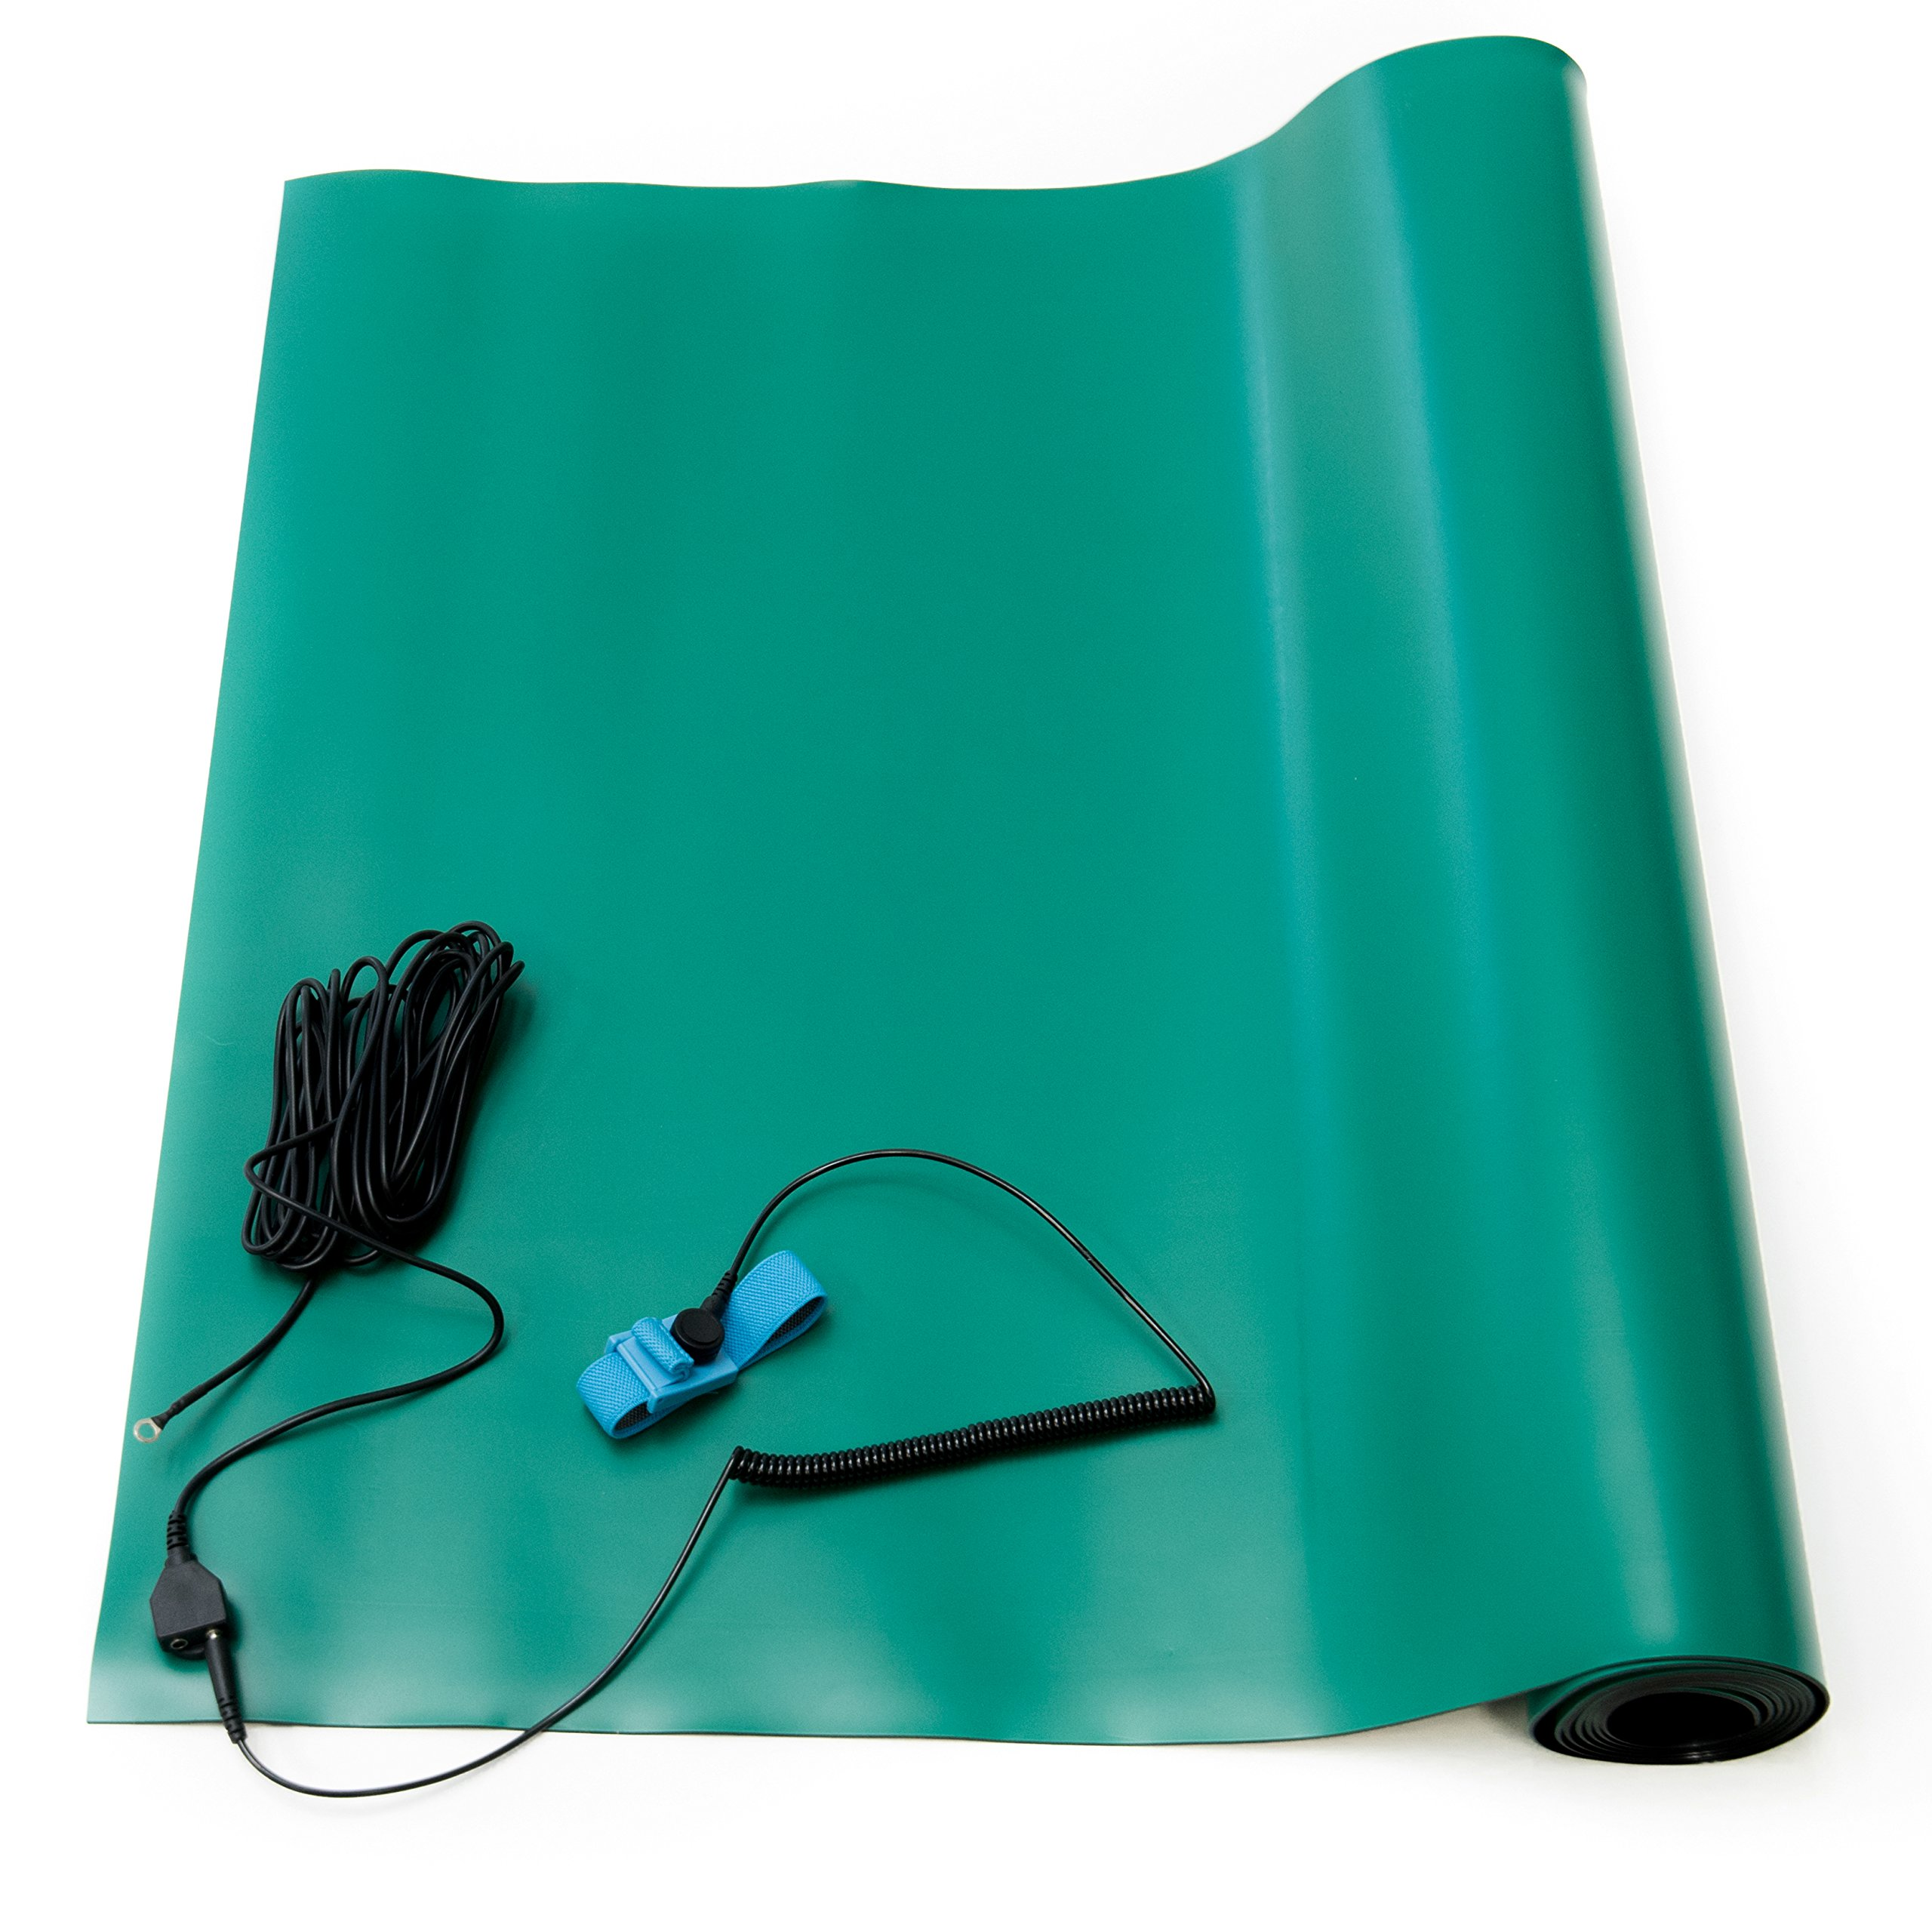 Bertech ESD High Temperature Rubber Mat Kit with a Wrist Strap and Grounding Cord, 20'' Wide x 24'' Long x 0.08'' Thick, Green